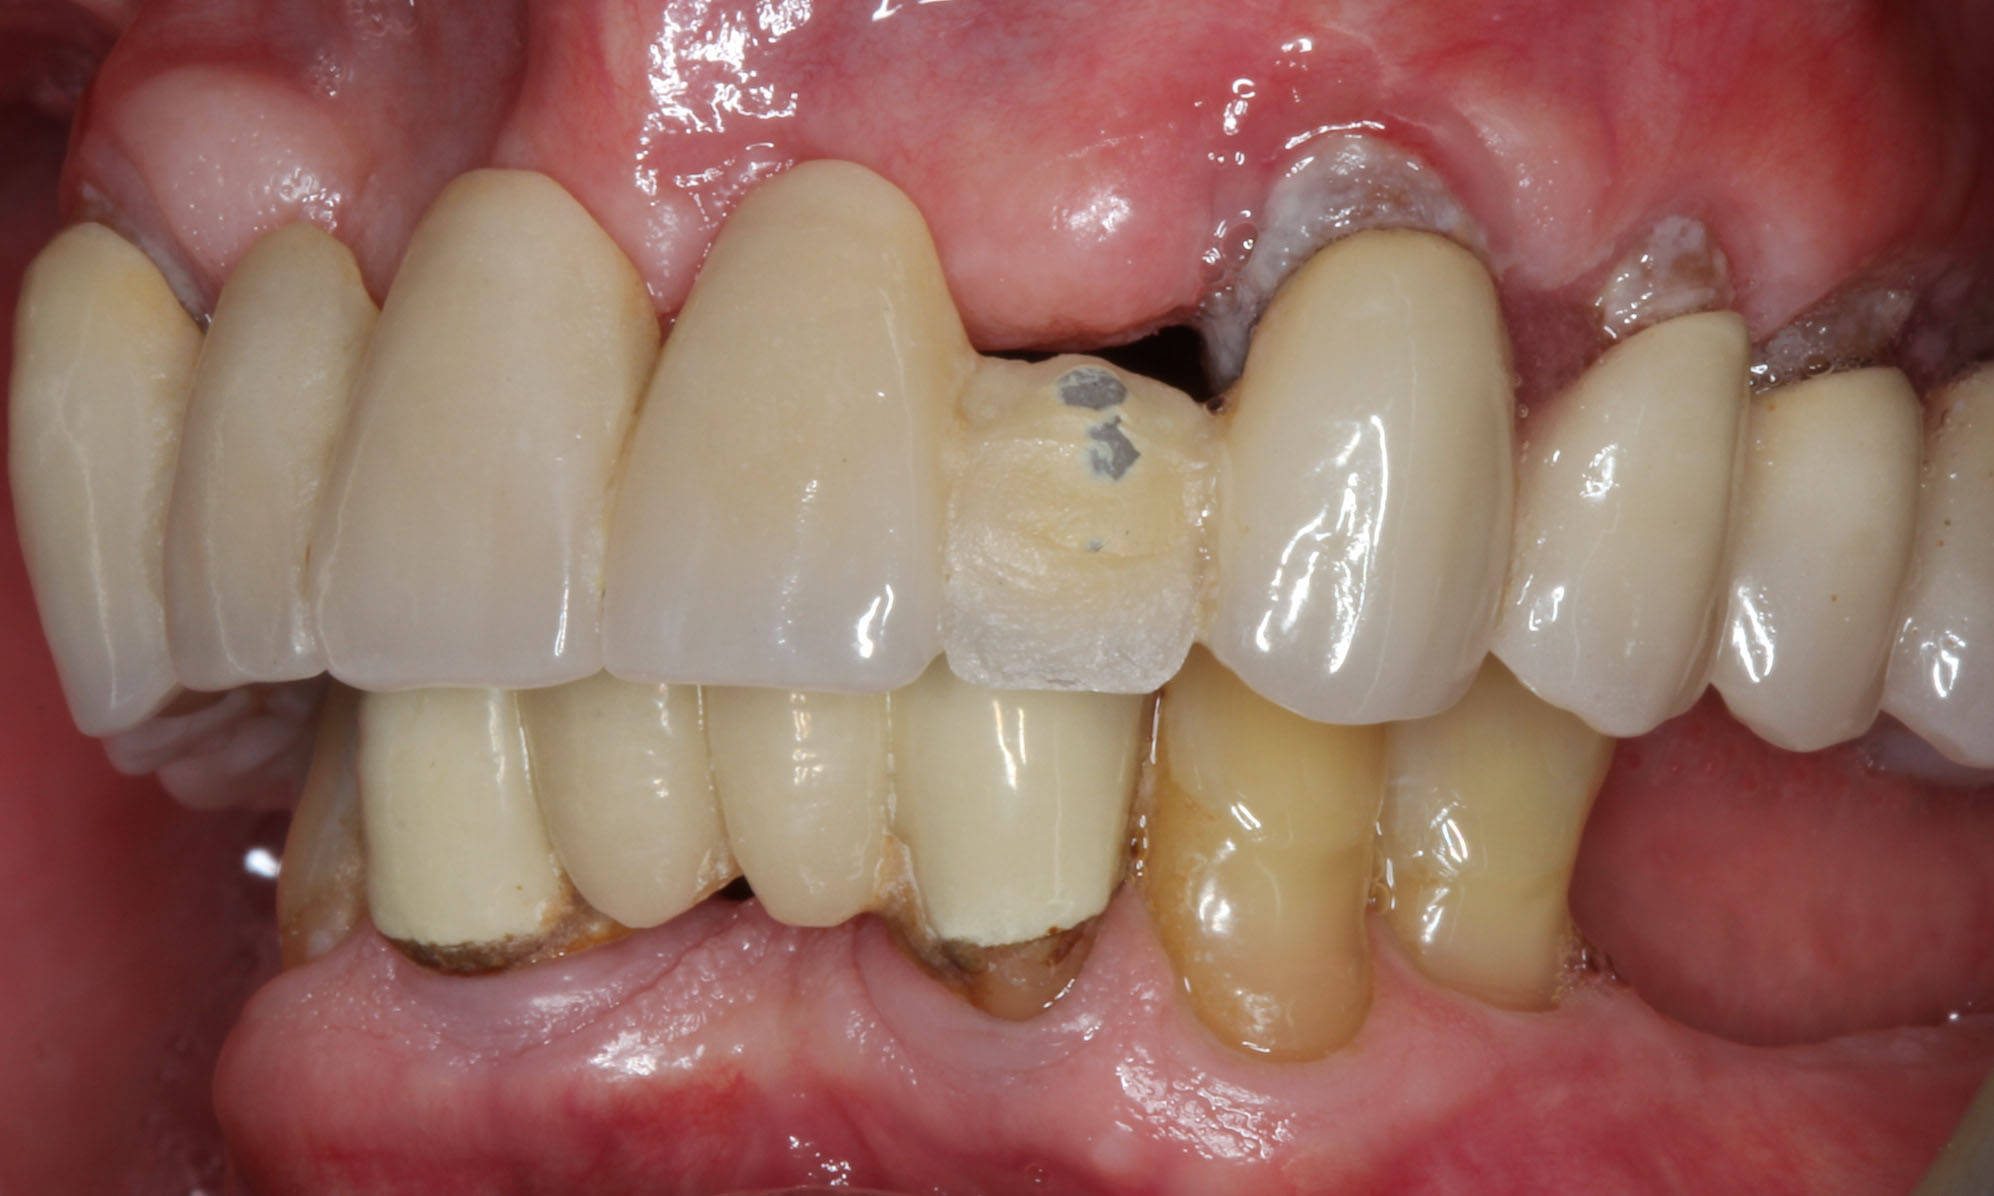 Tooth Ache When Walking Dental Implants